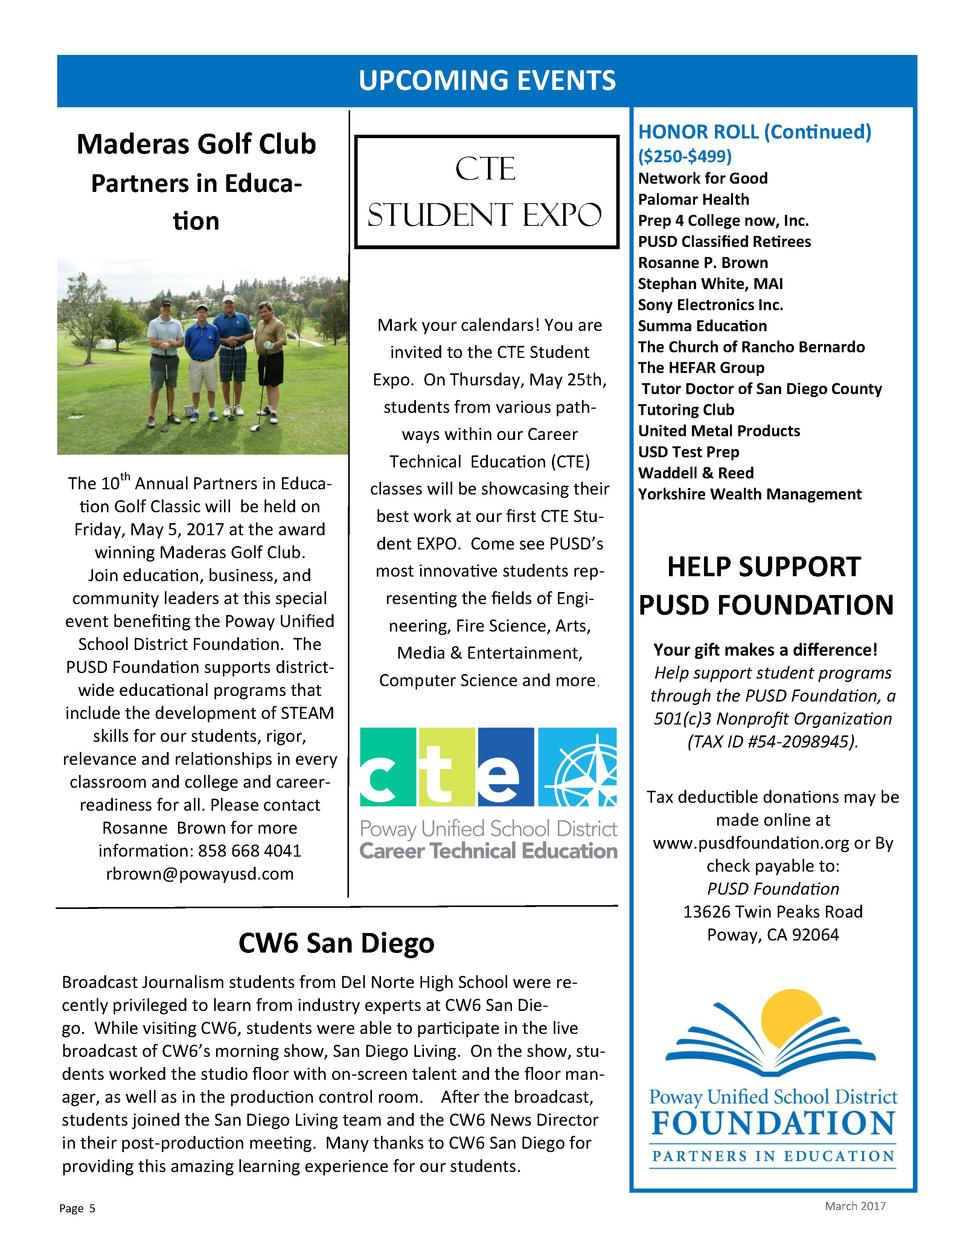 UPCOMING EVENTS Maderas Golf Club Partners in Education  The 10th Annual Partners in Education Golf Classic will be held o...